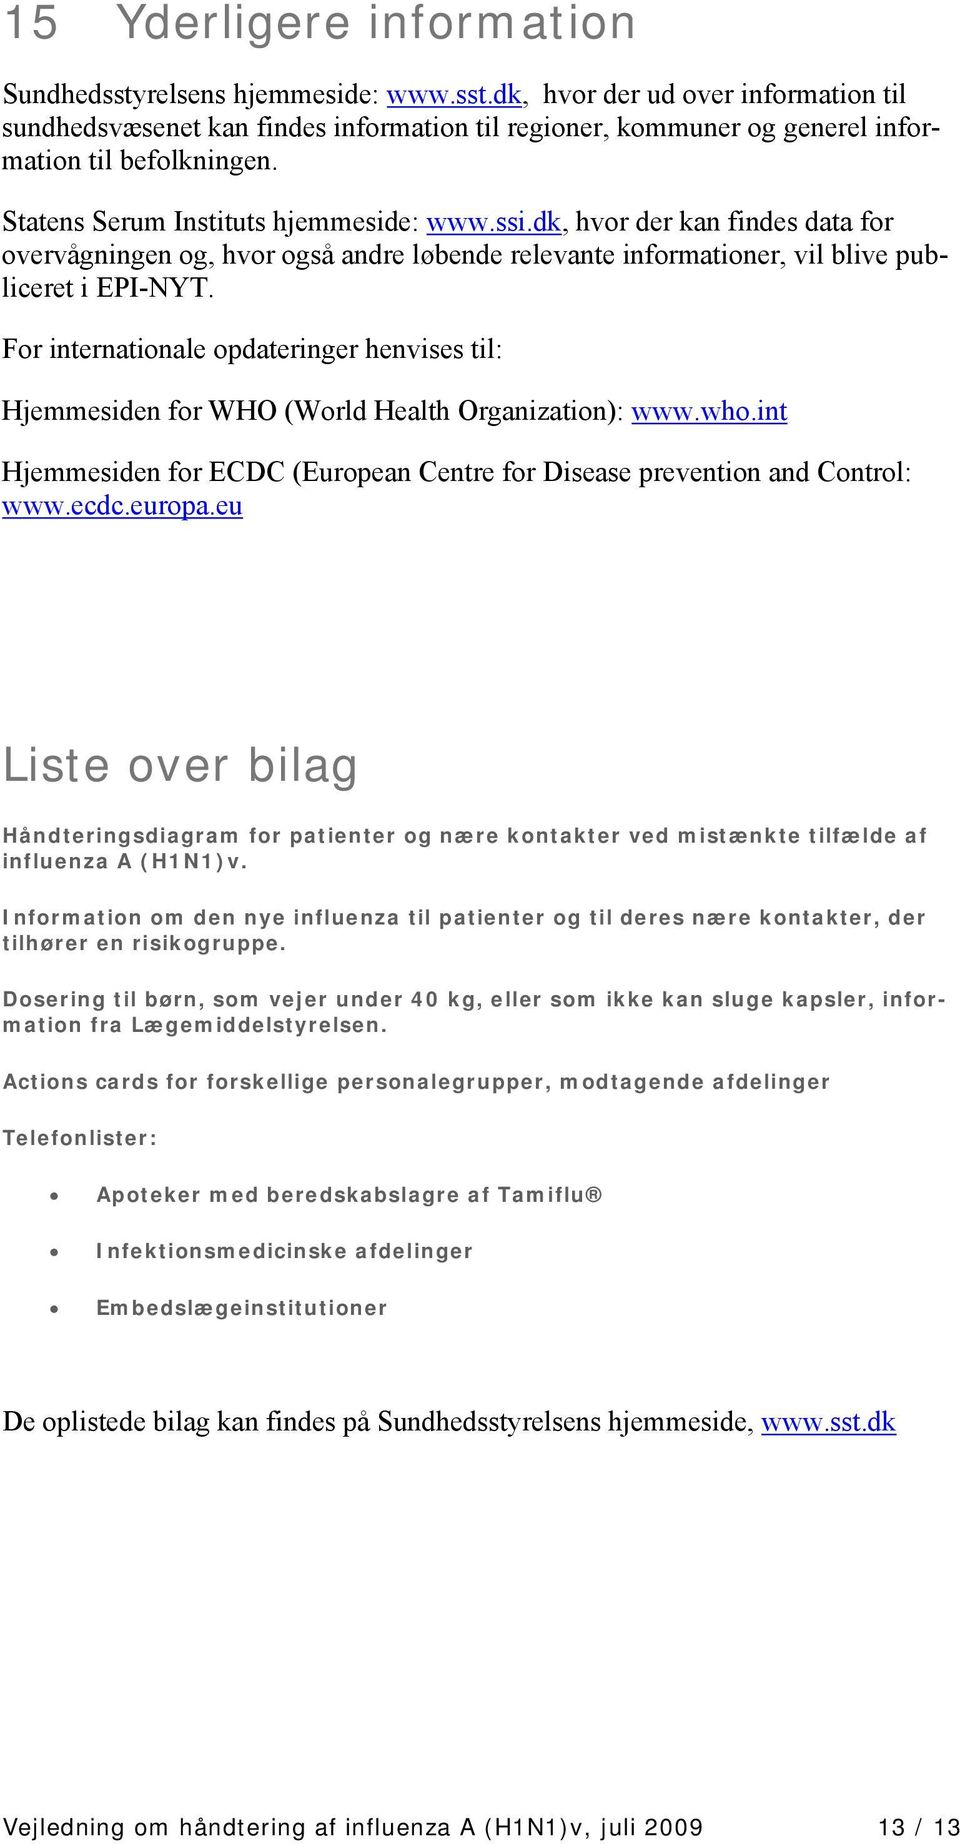 For internationale opdateringer henvises til: Hjemmesiden for WHO (World Health Organization): www.who.int Hjemmesiden for ECDC (European Centre for Disease prevention and Control: www.ecdc.europa.